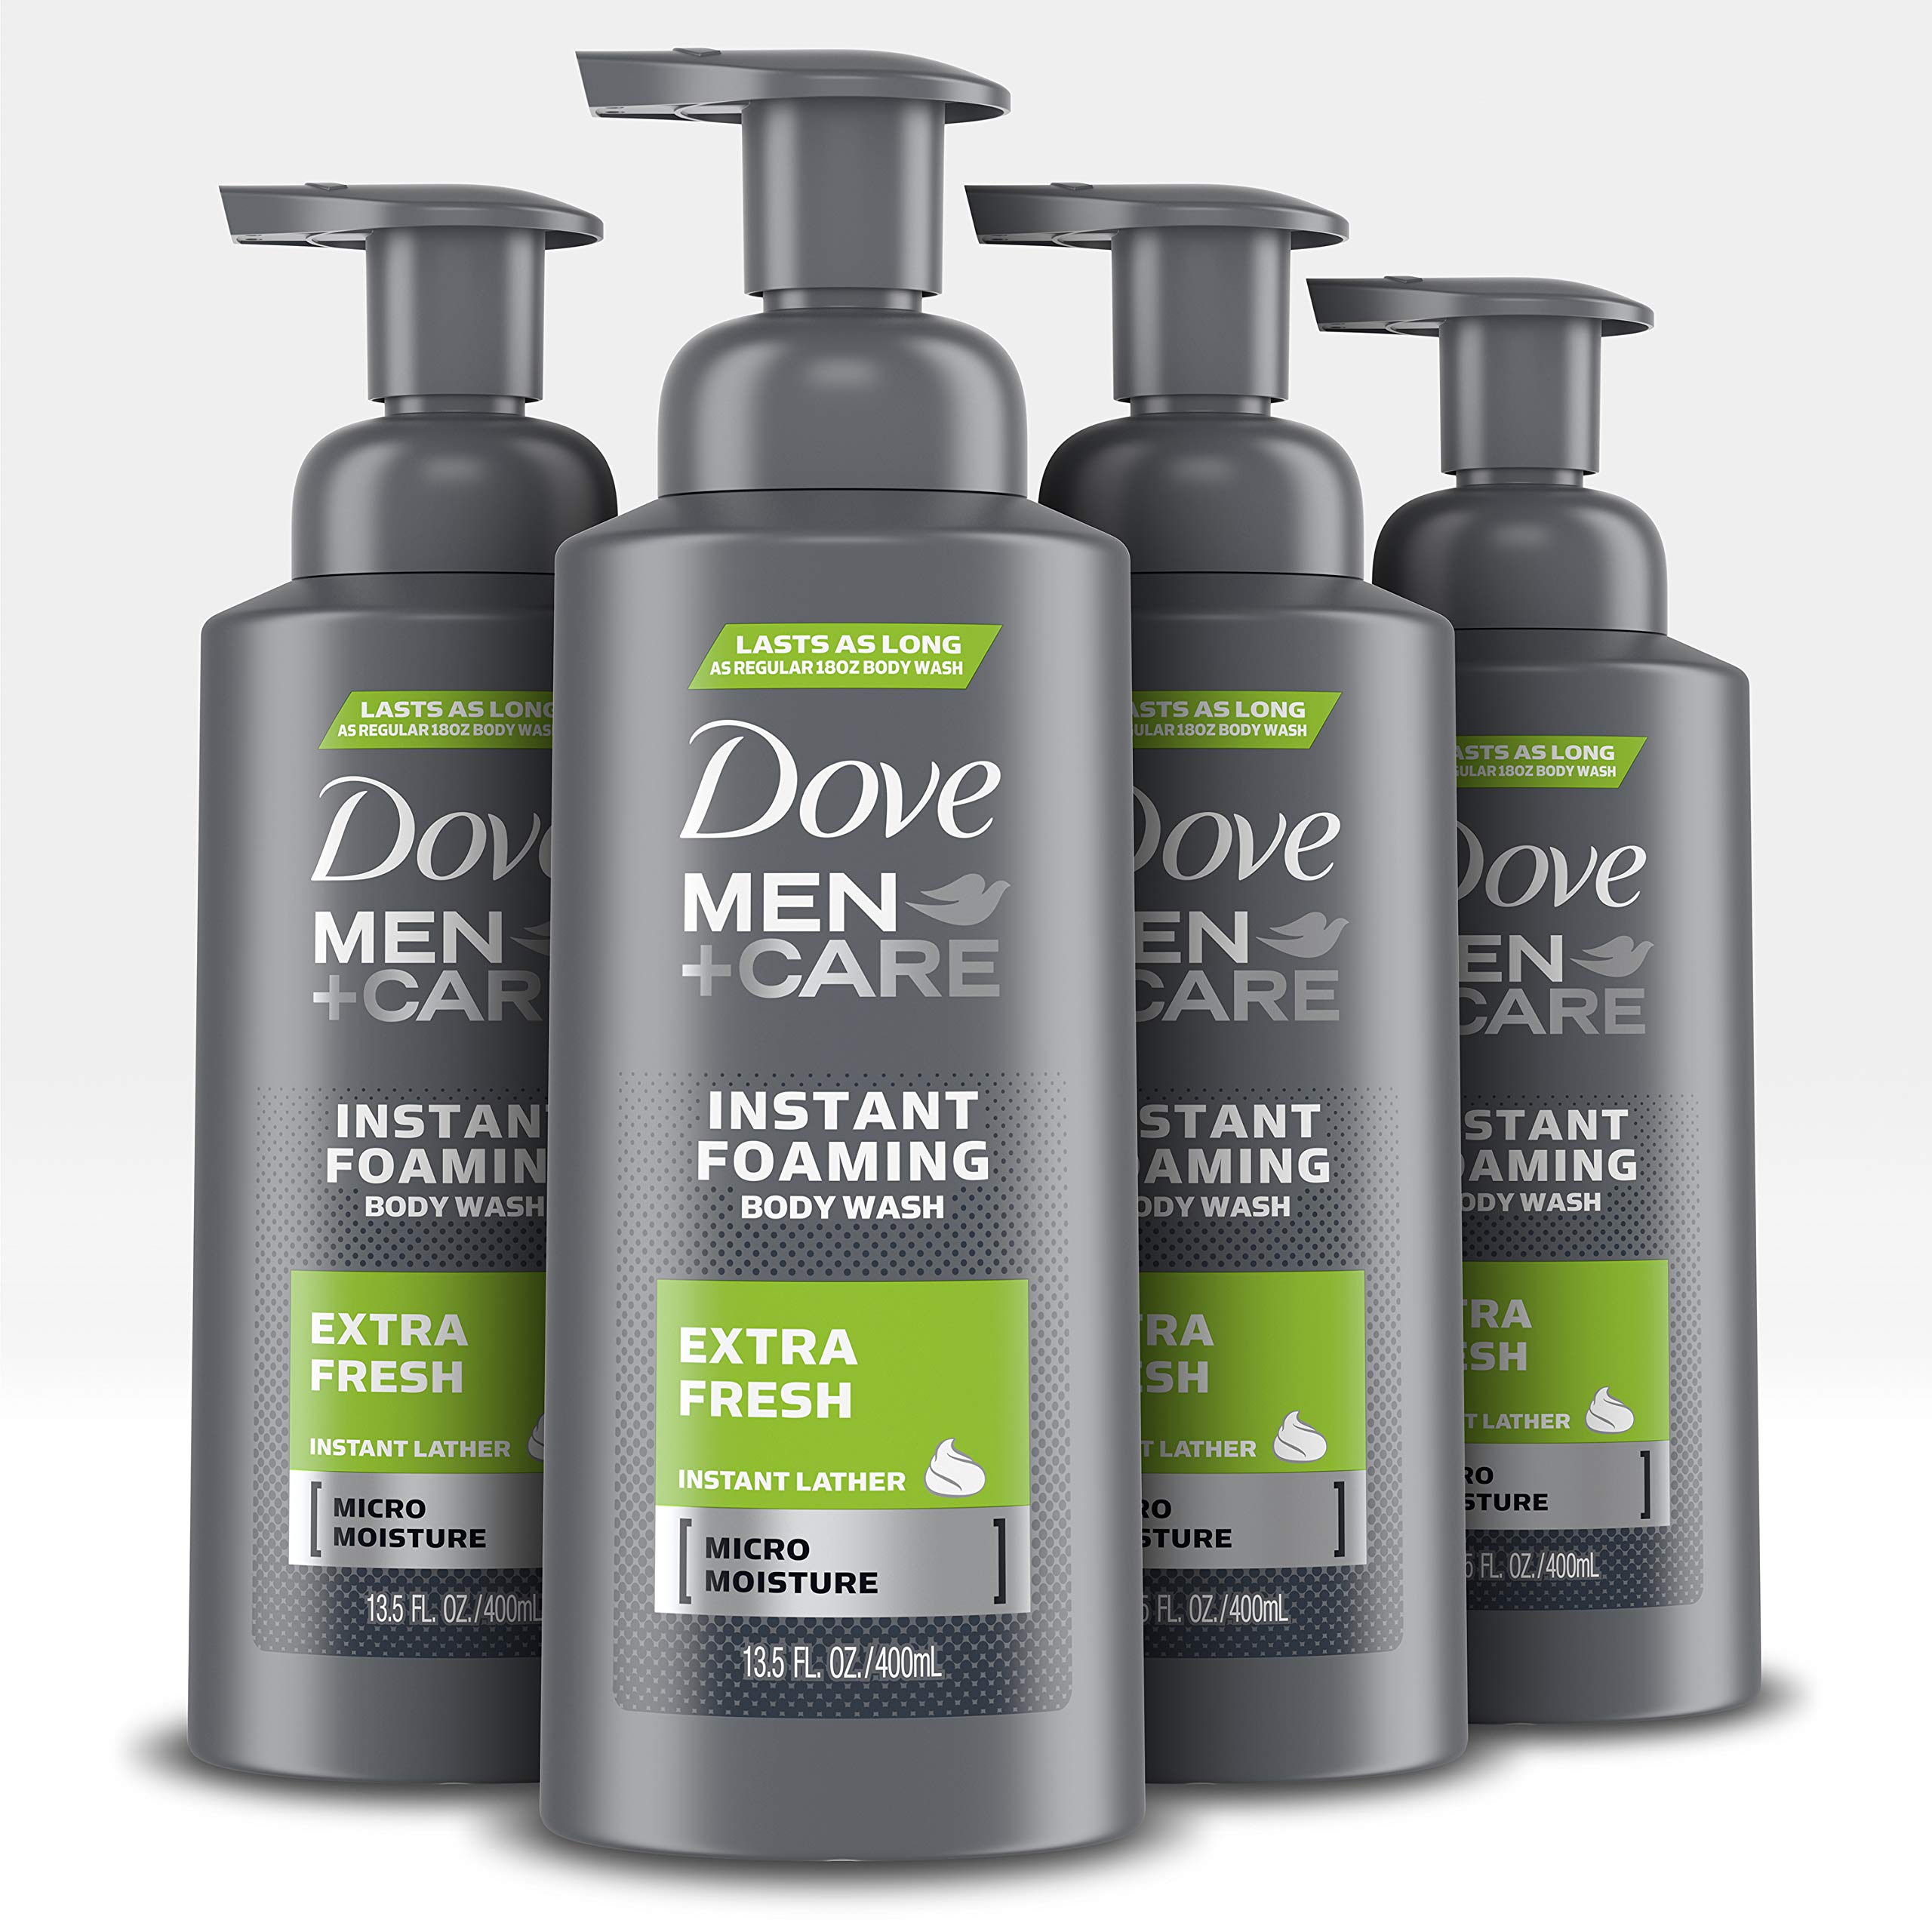 Dove Men Care Foaming Body Wash To Hydrate Skin Clean Comfort Effectively Washes Away Bacteria While Nourishing Your Skin 13 5 Oz 4 Count Buy Online In El Salvador Missing Category Value